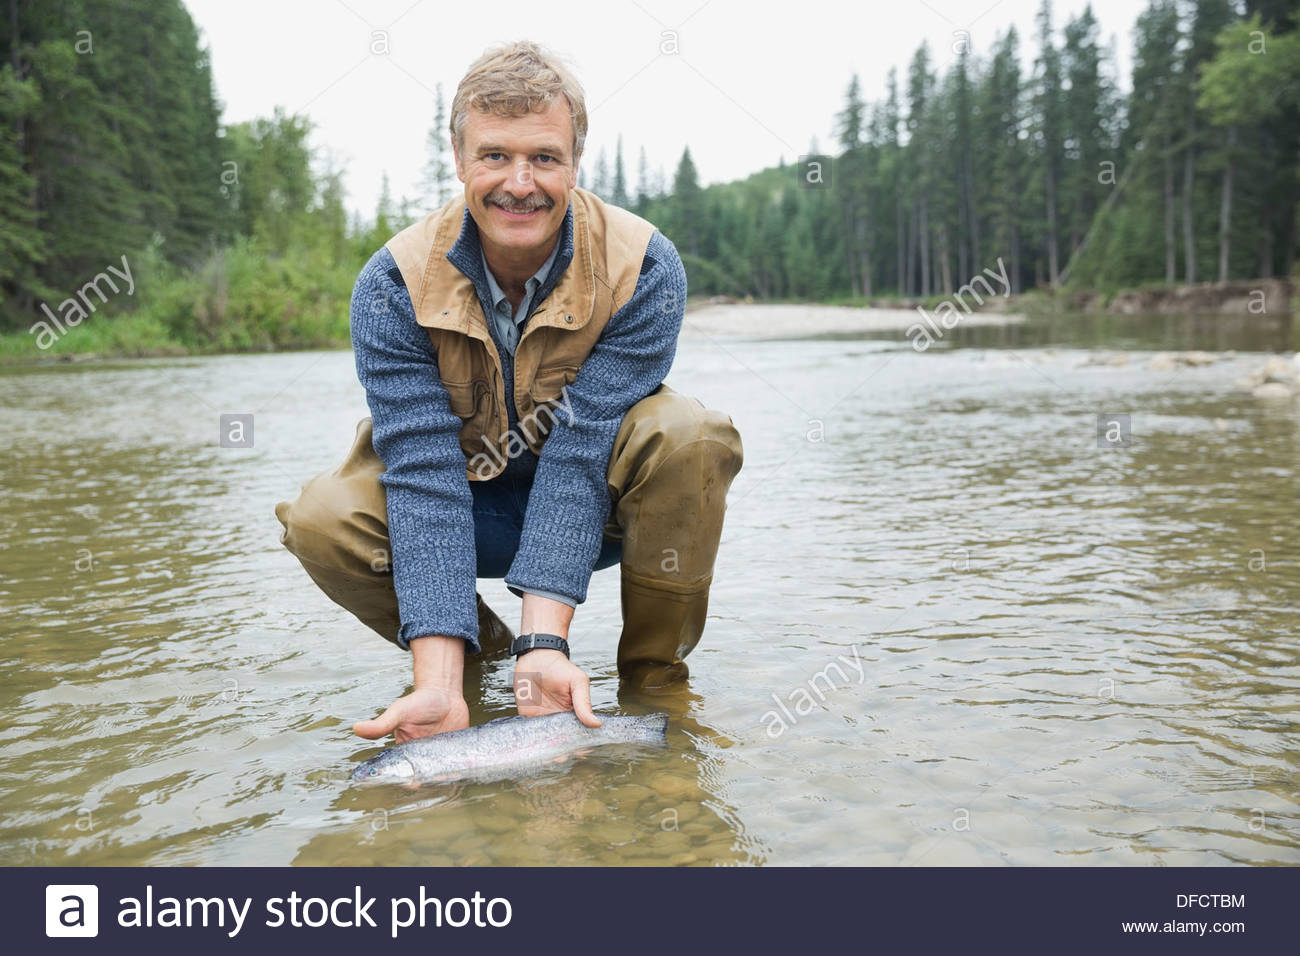 Portrait of mature man holding caught fish - Stock Image